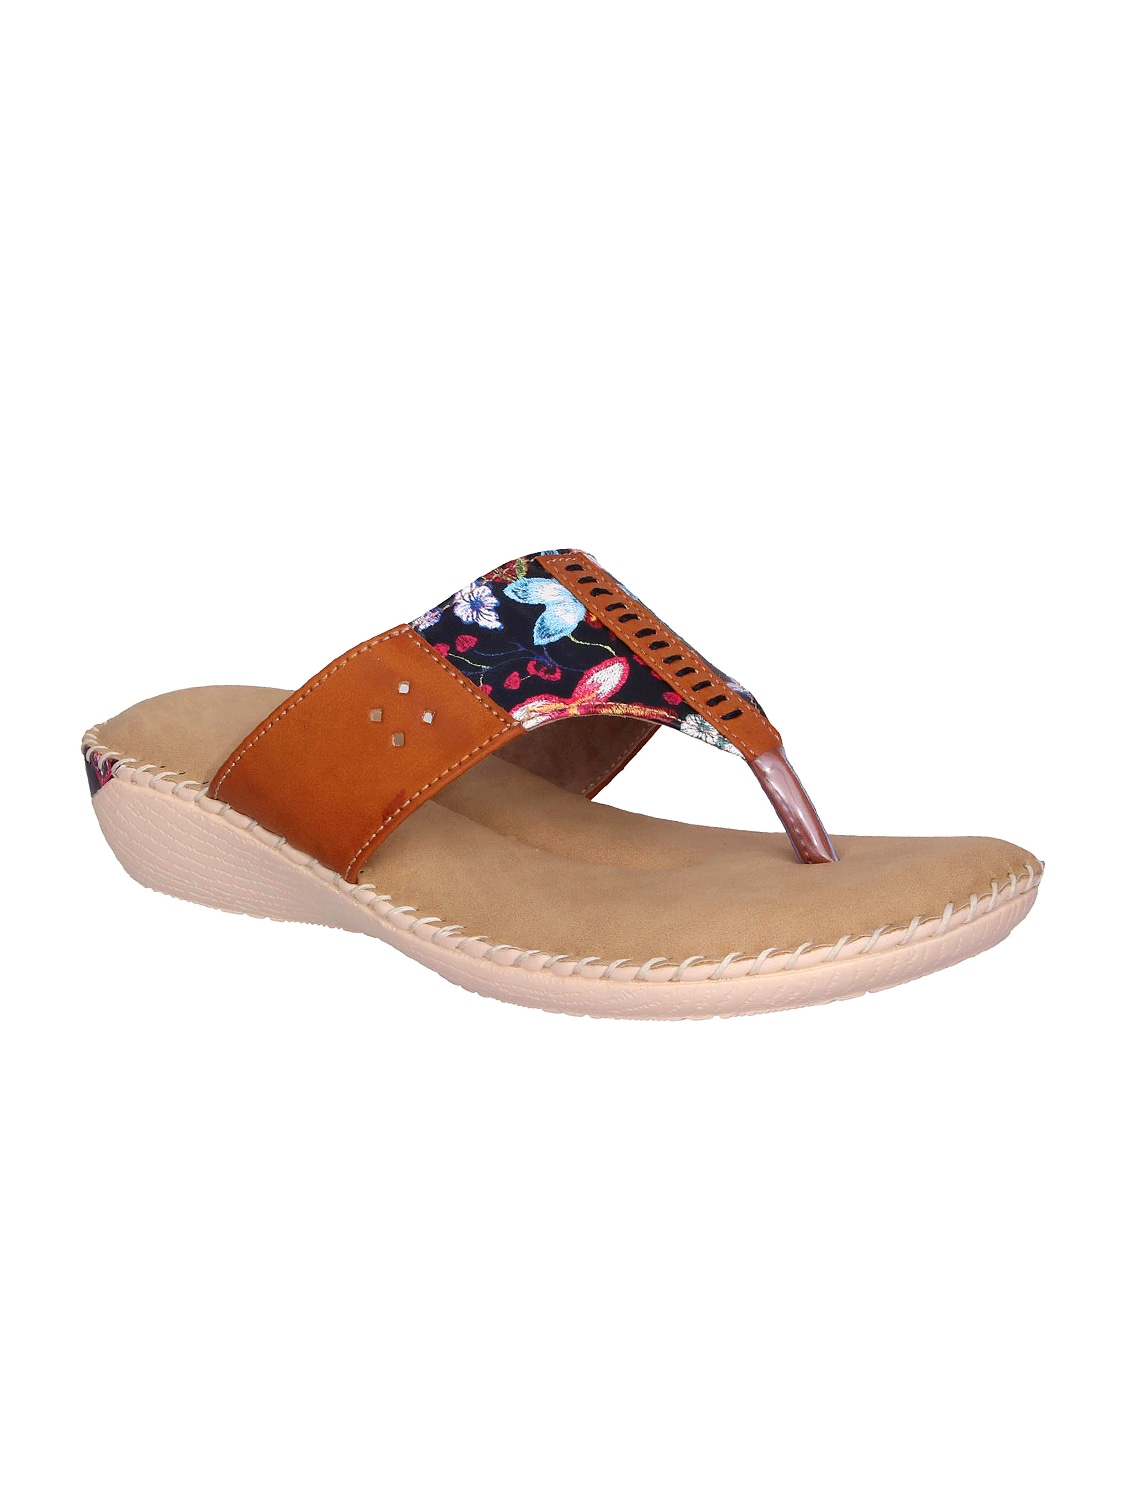 cd0a38af7ea1f Buy Tan Toe Separator Slippers for Women from Doctor Soft for ₹602 ...